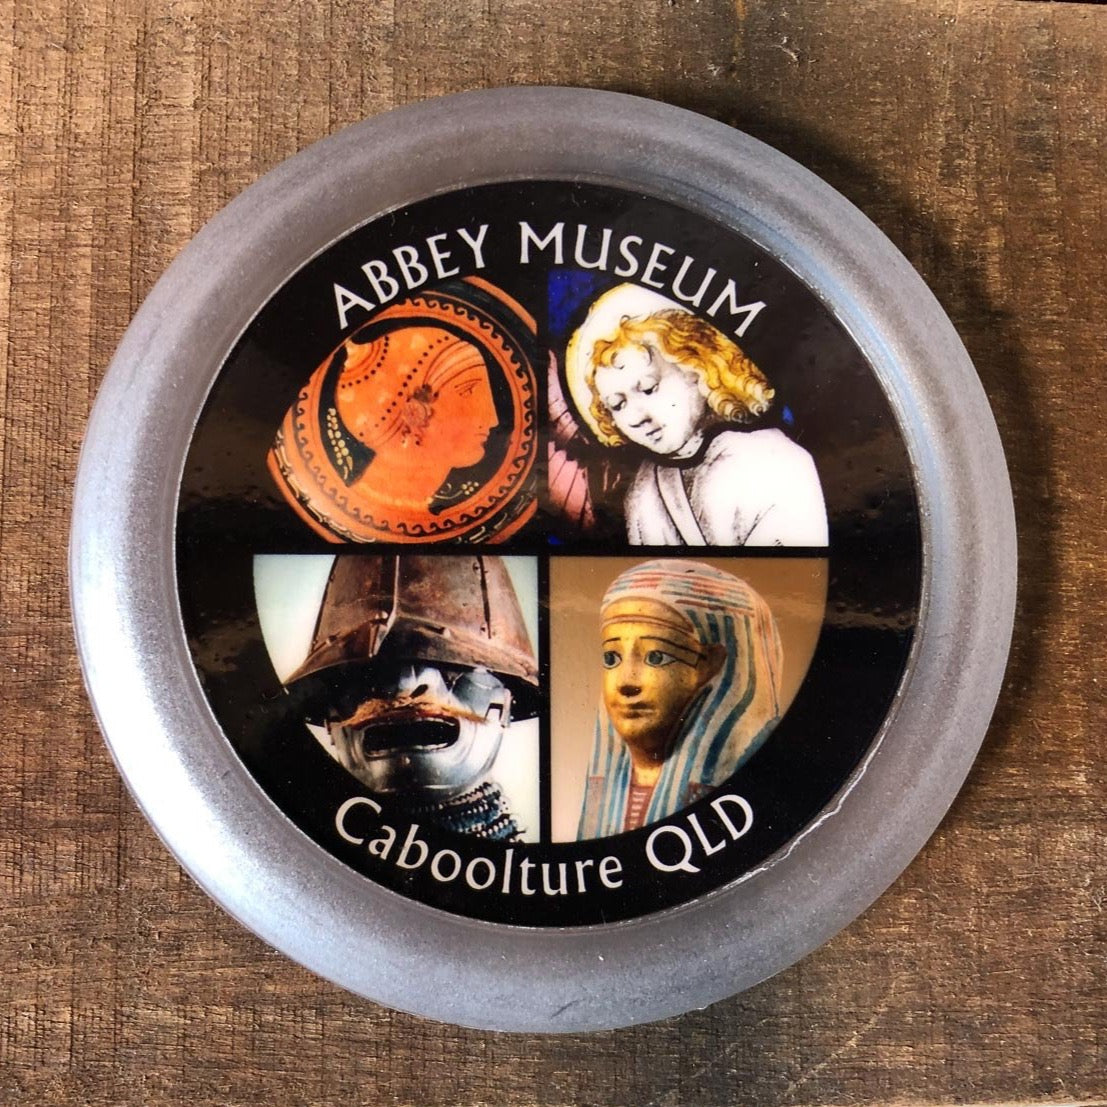 Abbey Museum Drink Coaster